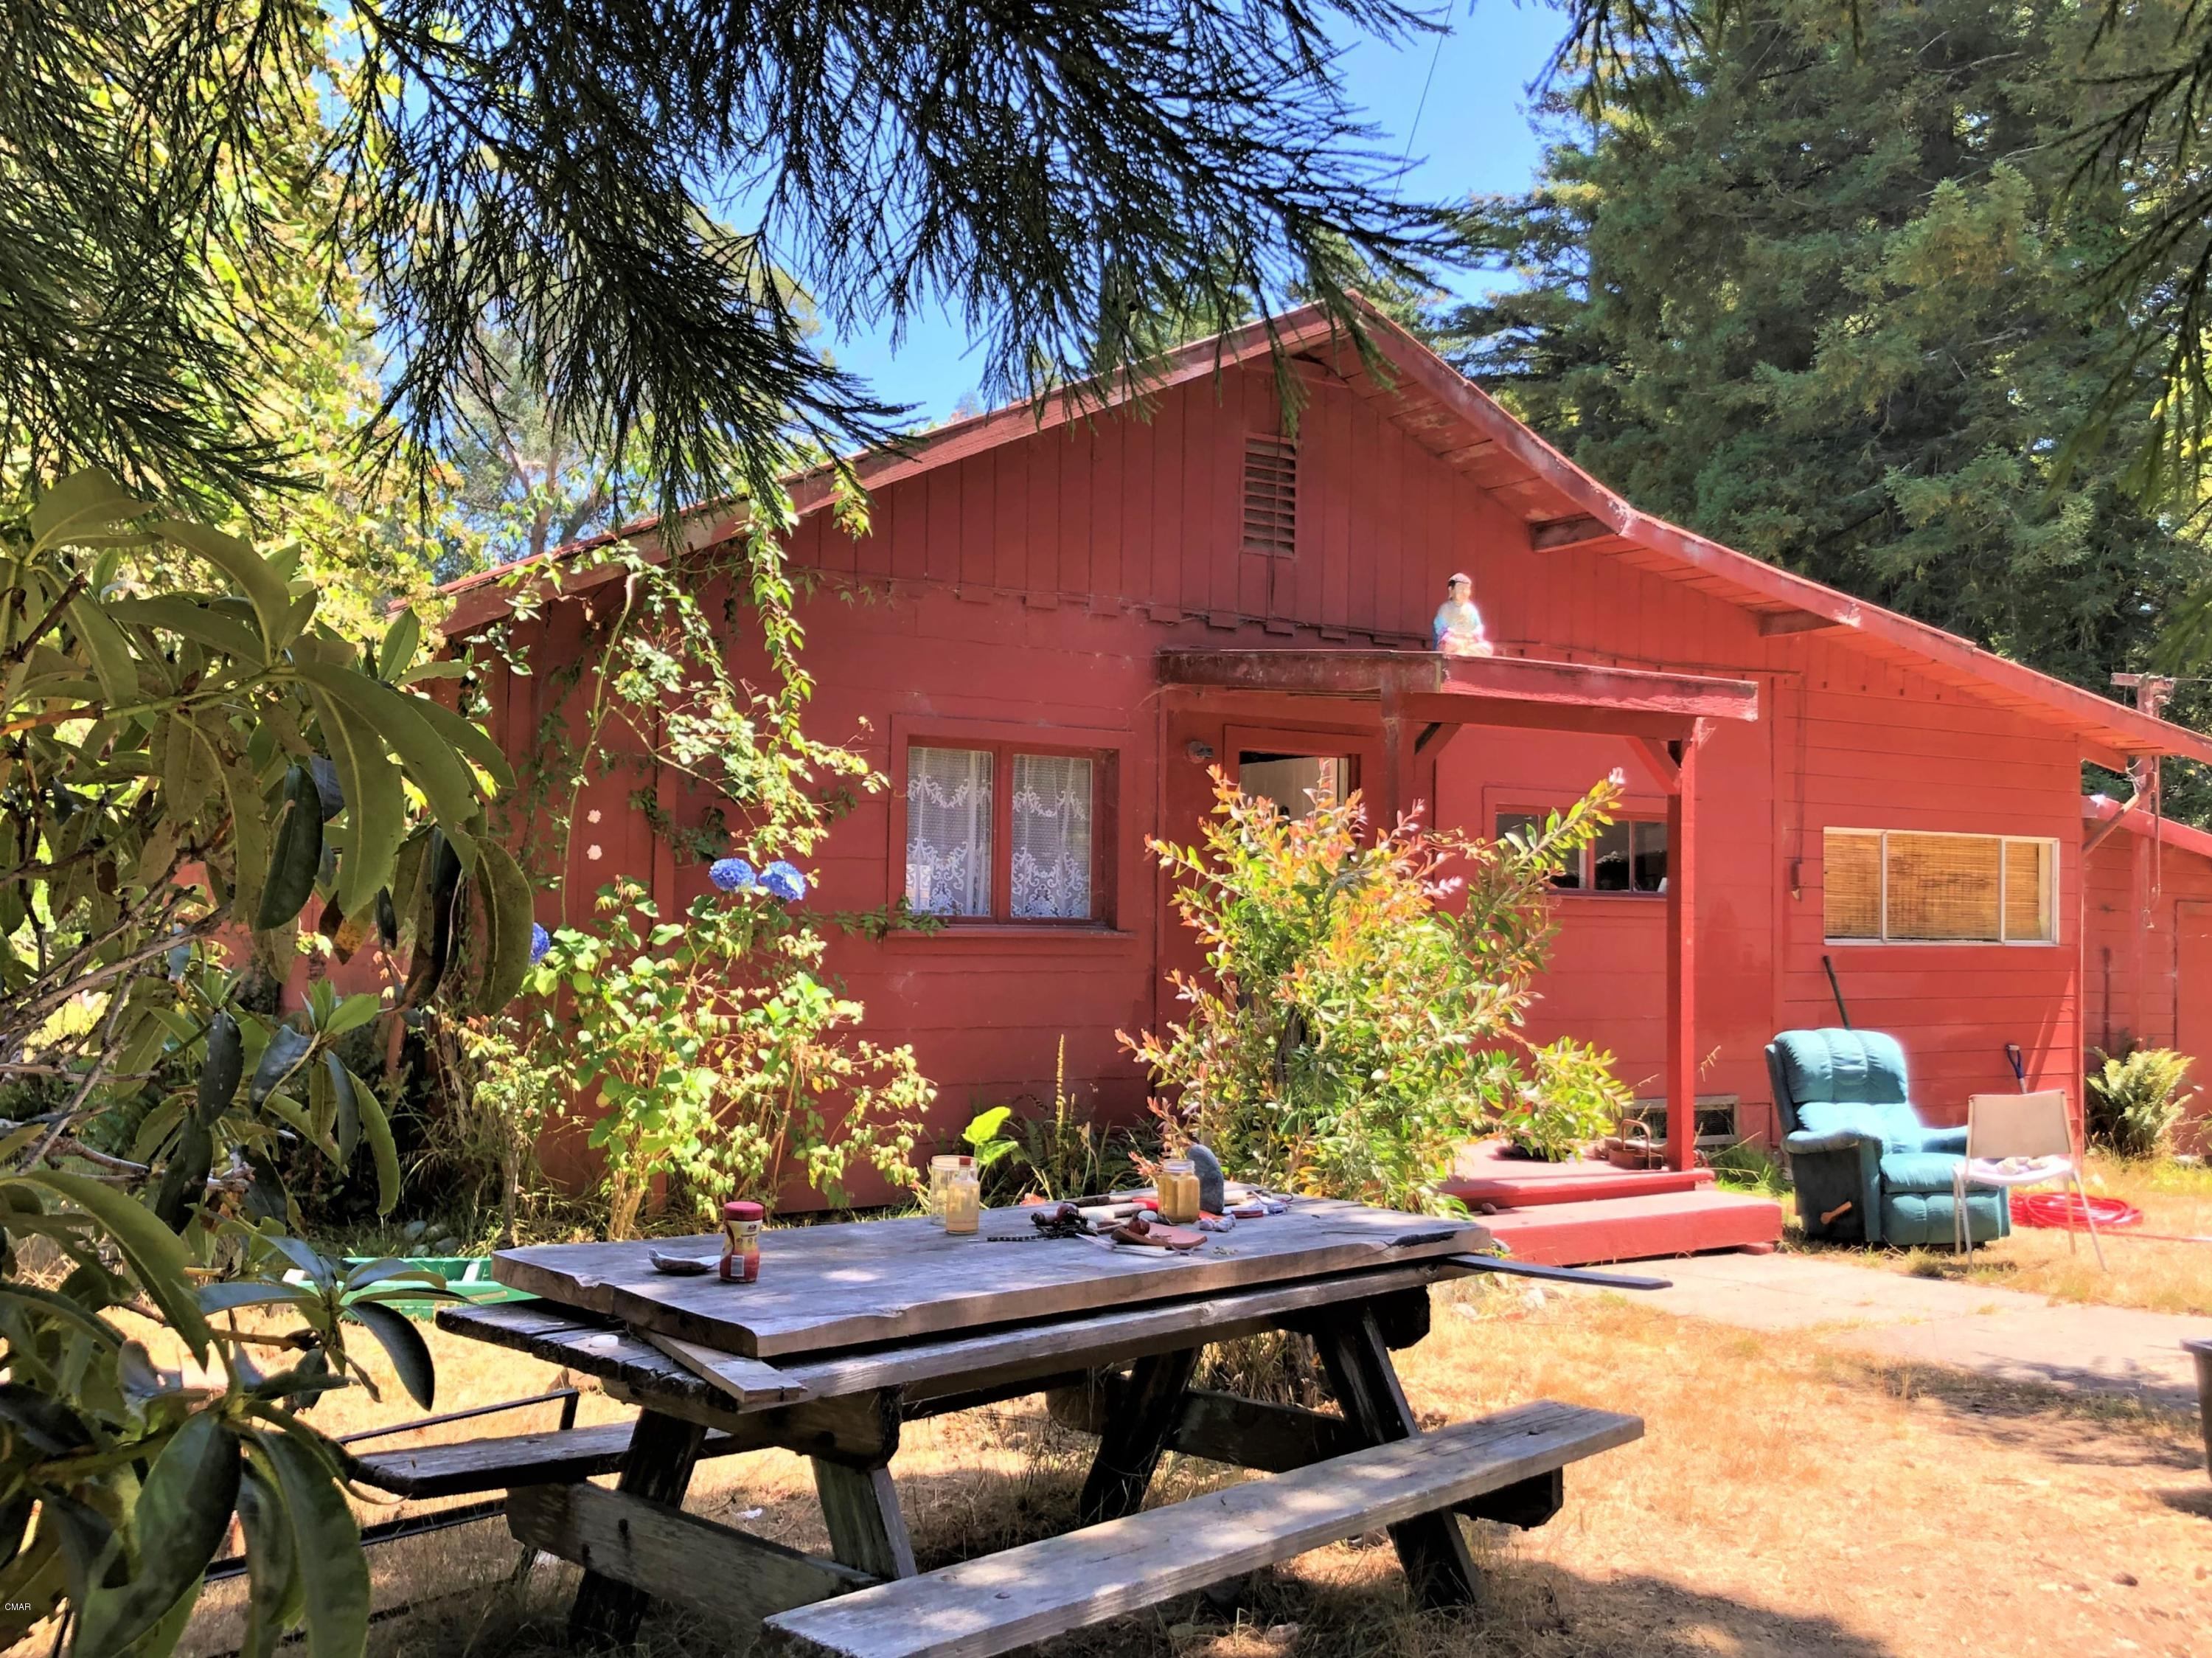 Beautiful sunbelt country land with fixer home and outbuildings. This property is ideal for gardens and animals. The acreage has a nice mix of sunny clearings and trees, including some gorgeous redwoods. There is even a seasonal stream. The well has been providing a good supply of water. The septic has been recently updated.The older house has two bedrooms, a bathroom, living room, kitchen, dining area and laundry room. Out buildings include a sheds, studio, workshop and garage. Bring tool belt and dreams.